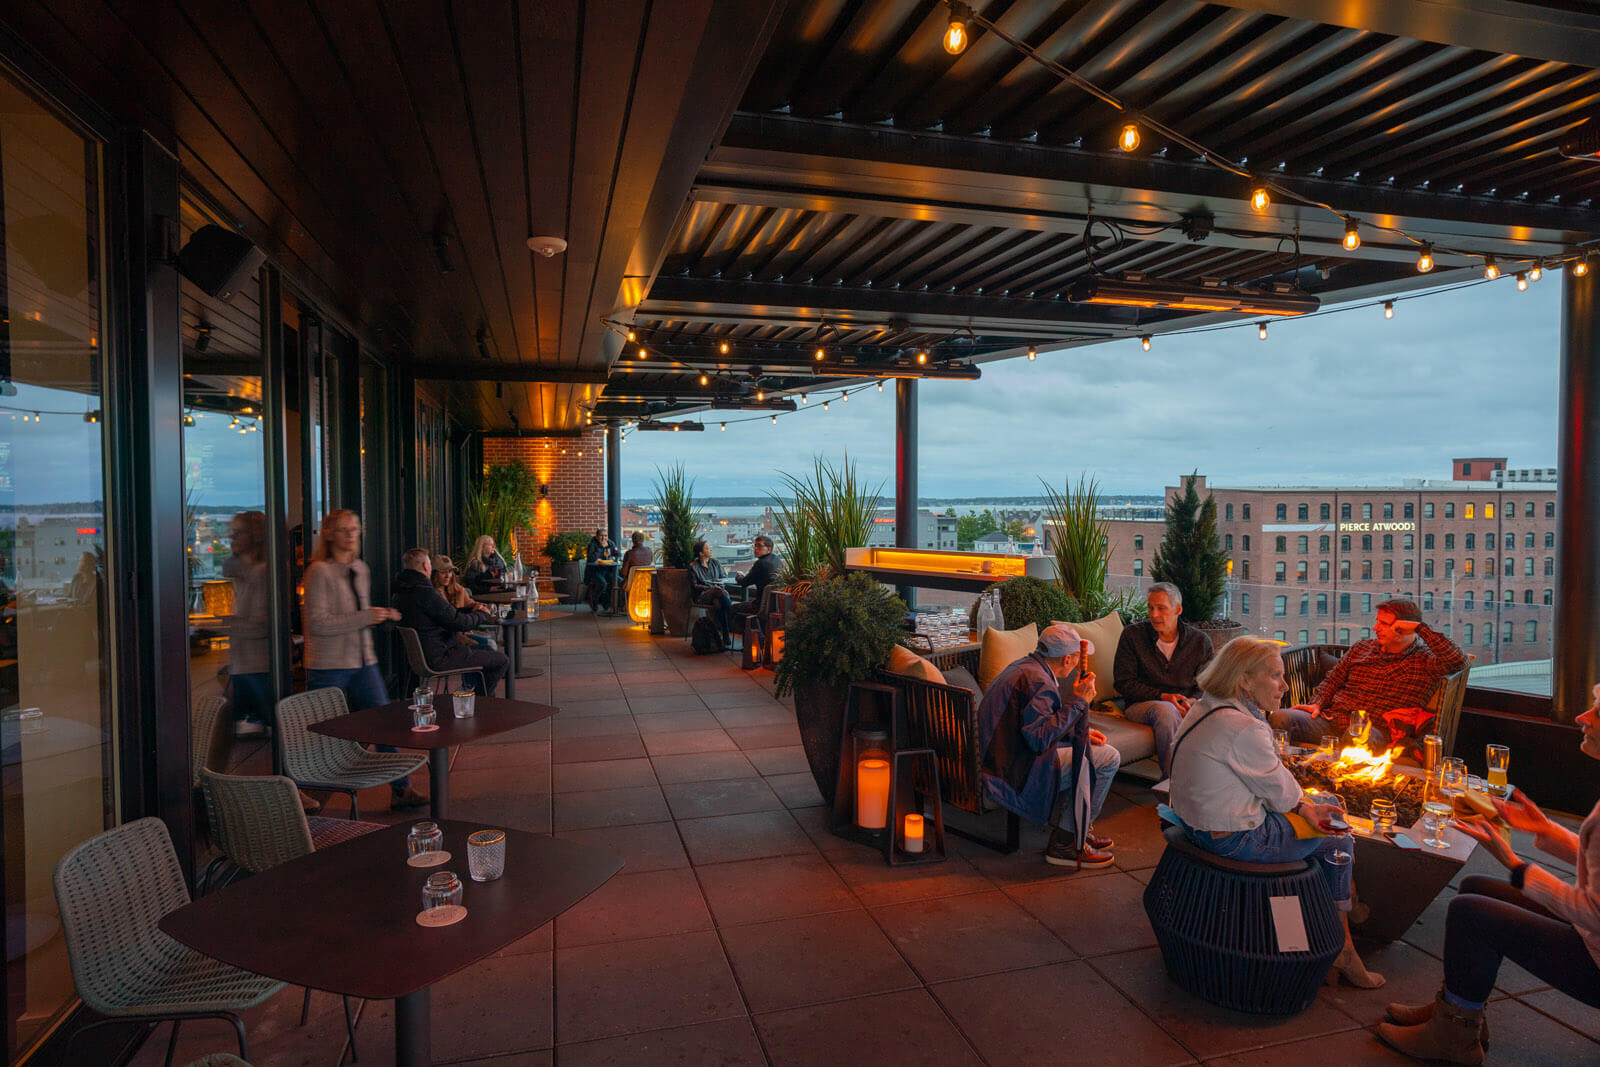 Luna Rooftop at Canopy by Hilton Portland Maine restaurant